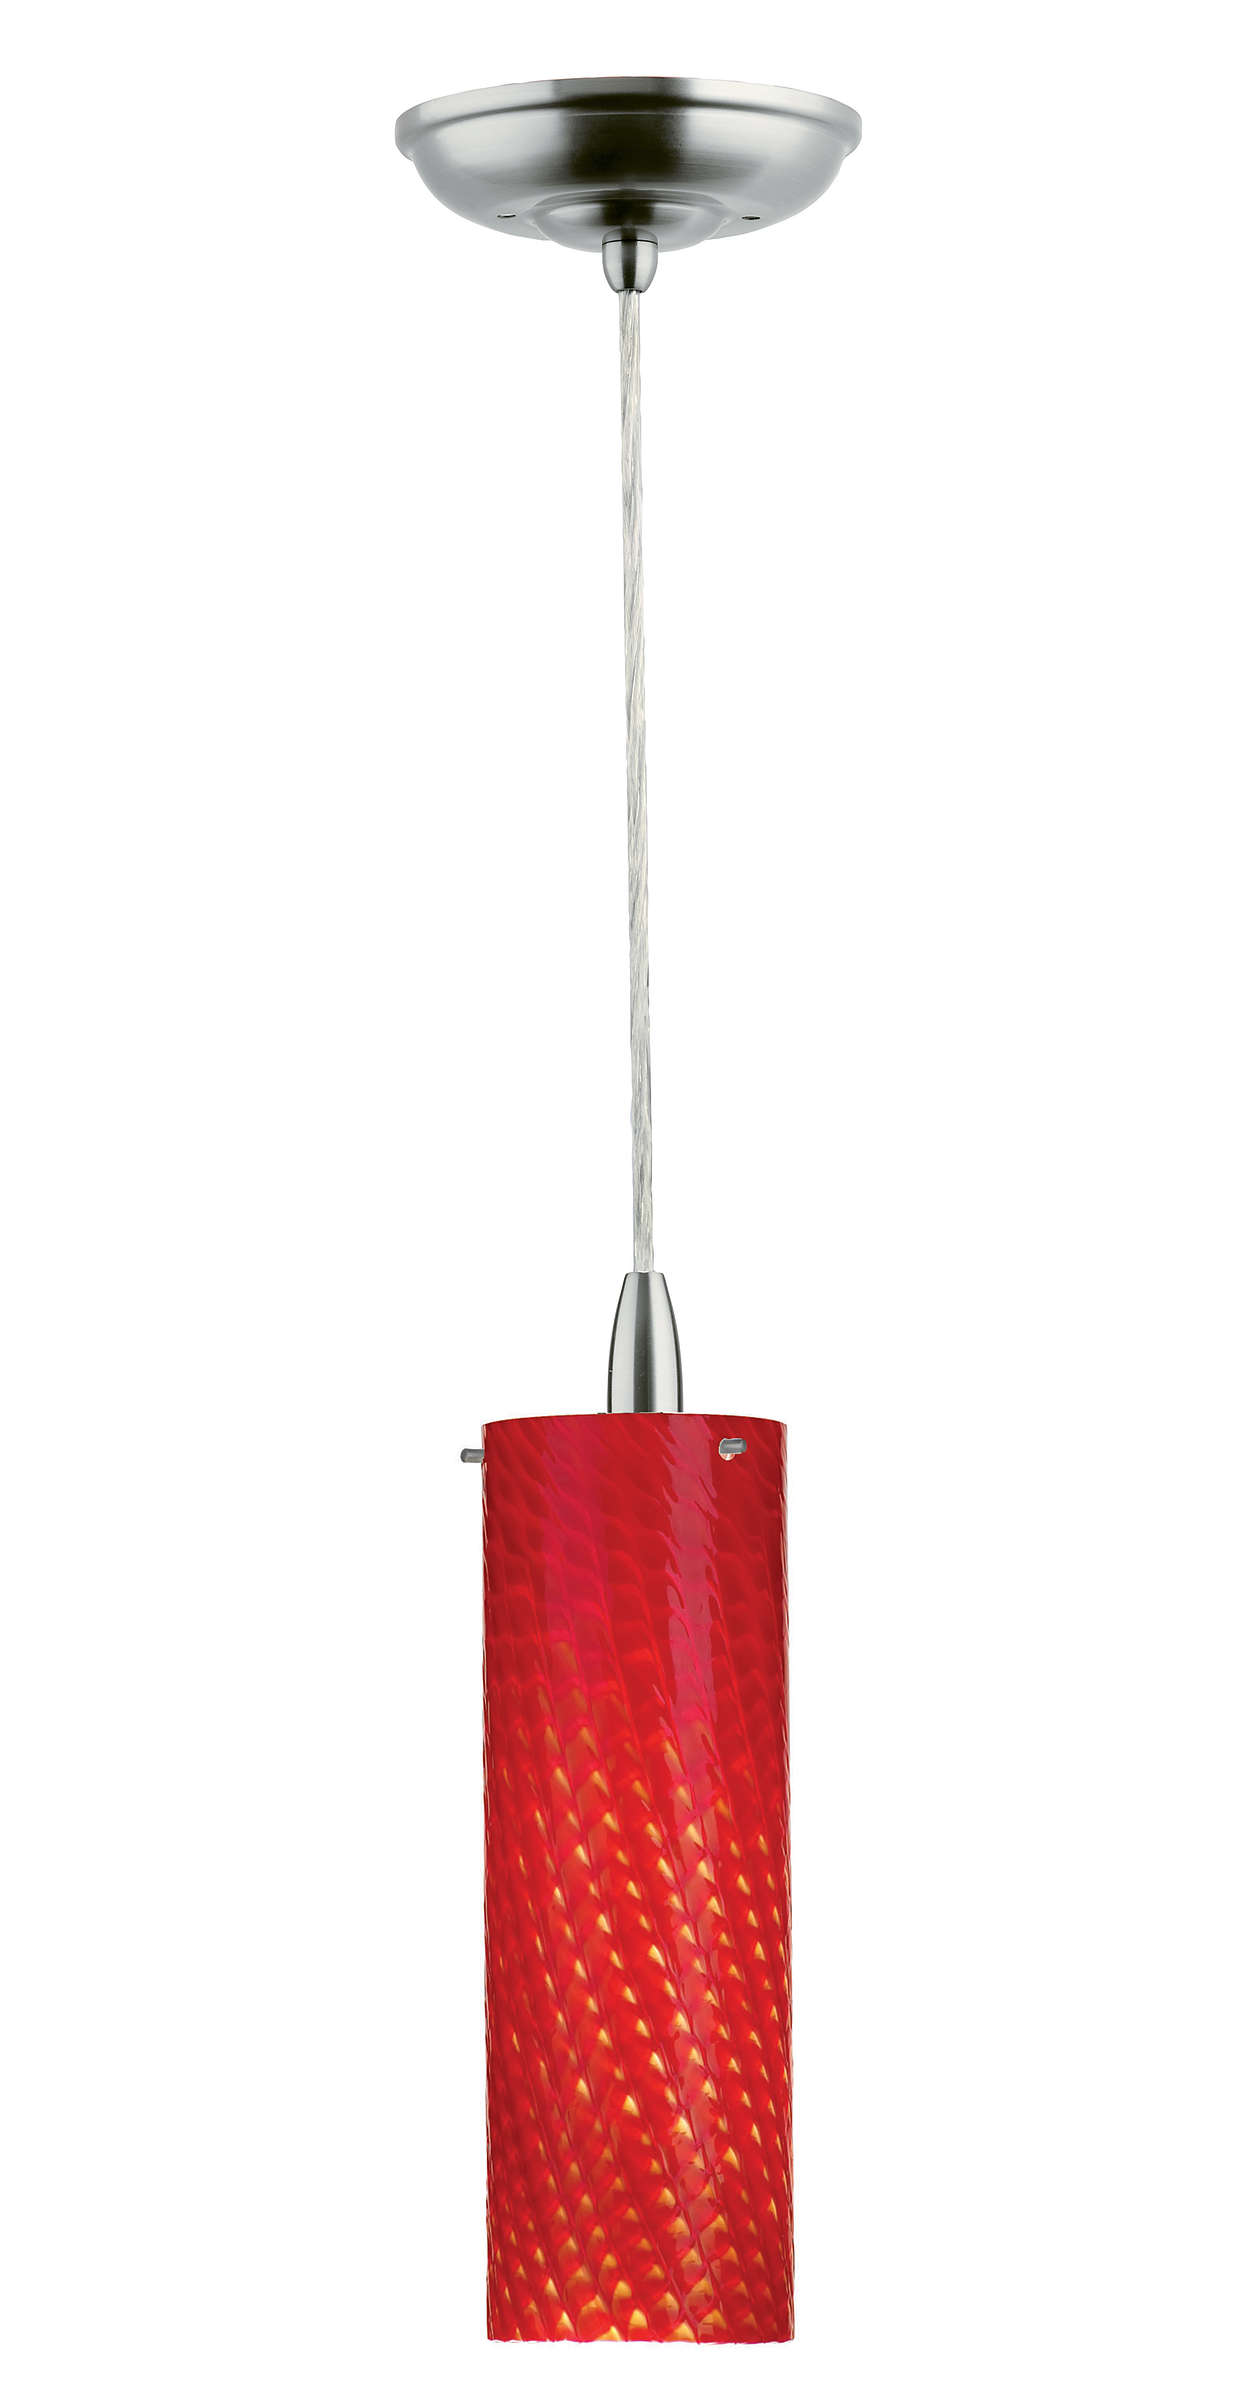 Marta 1-light pendant in Satin Nickel finish